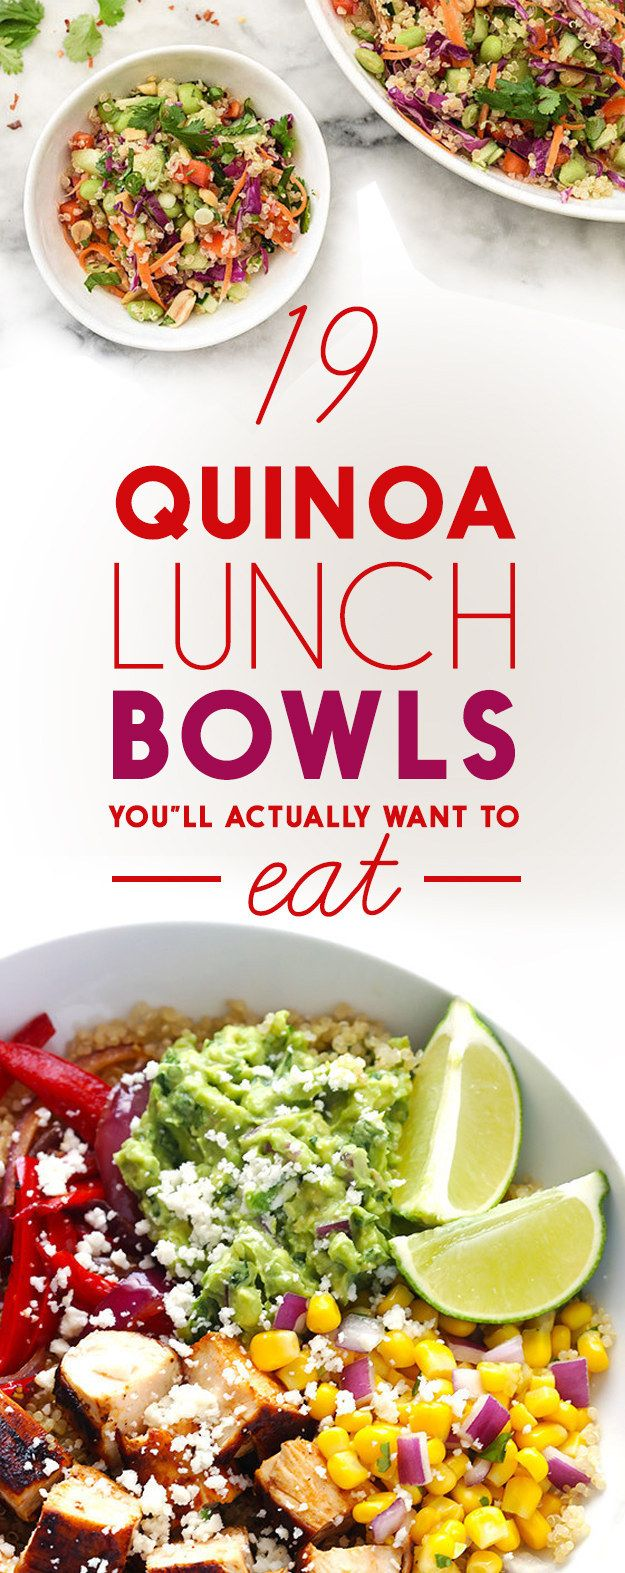 19 Quinoa Lunch Bowls You'll Actually Want To Eat